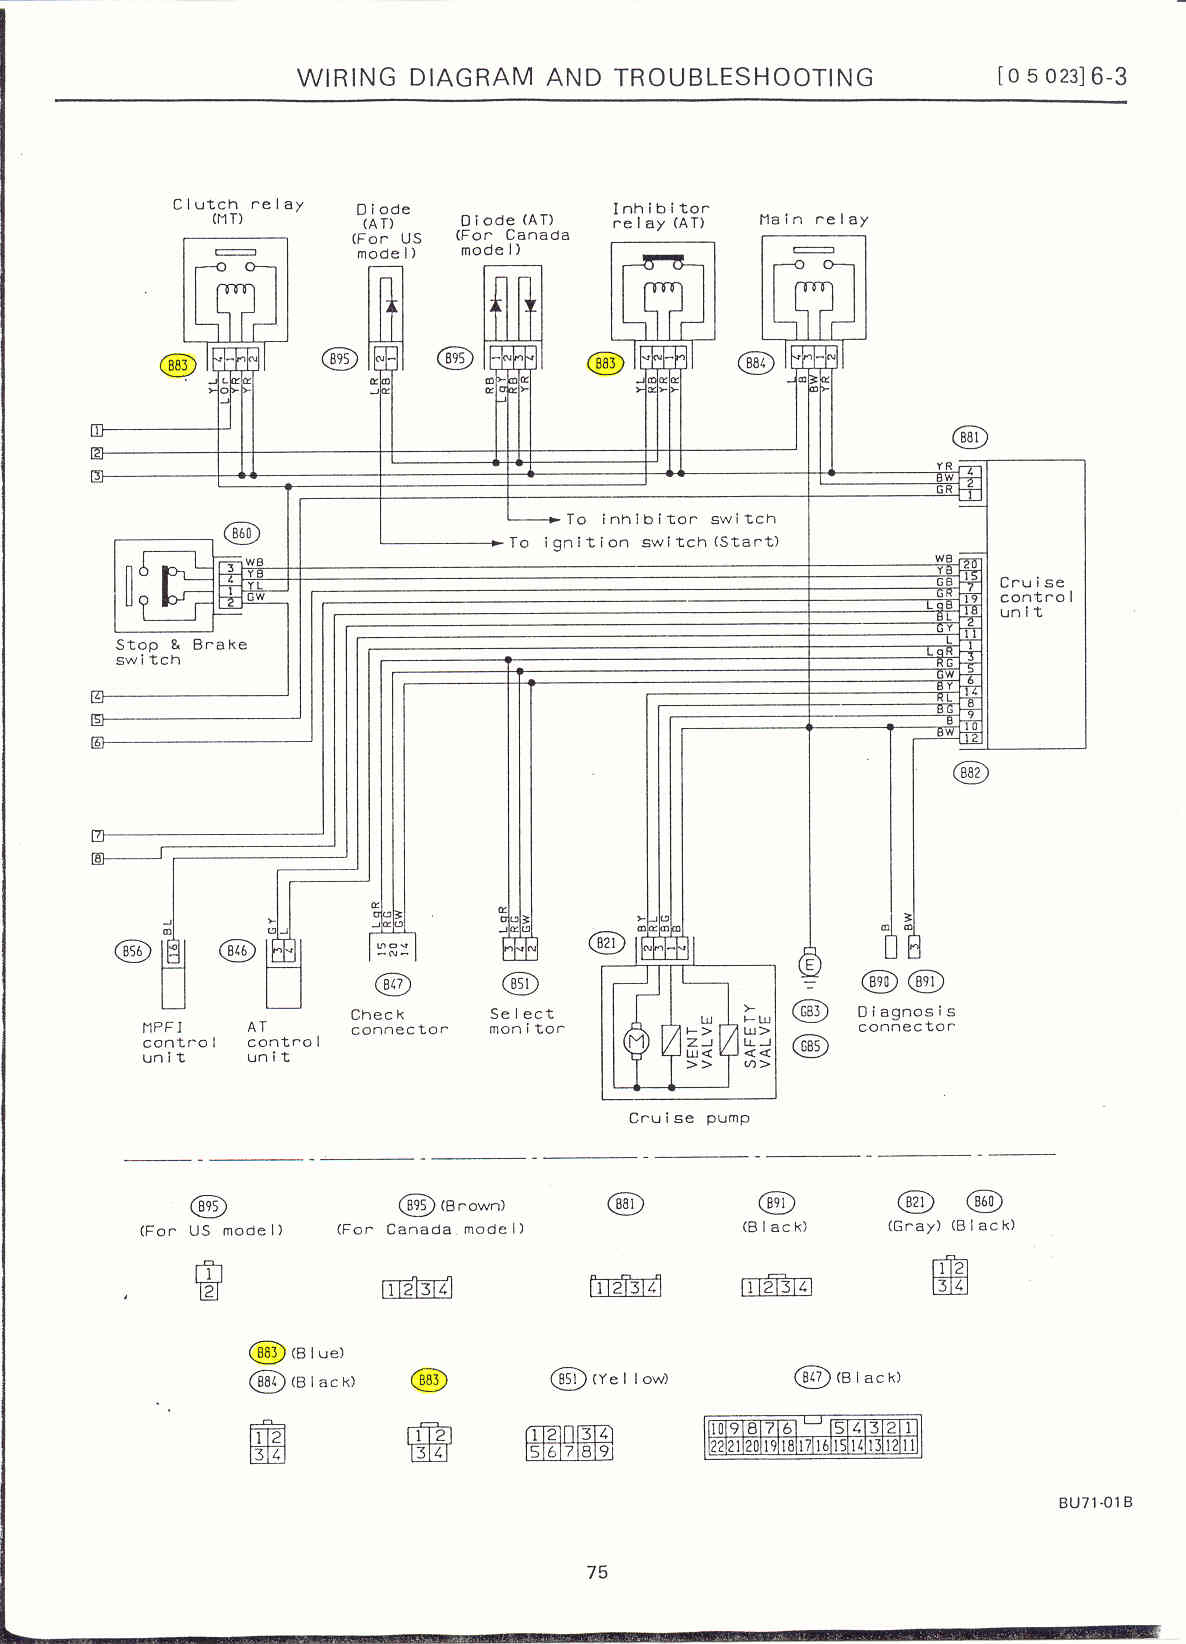 2001 Subaru Legacy Gt Engine Diagram : 36 Wiring Diagram